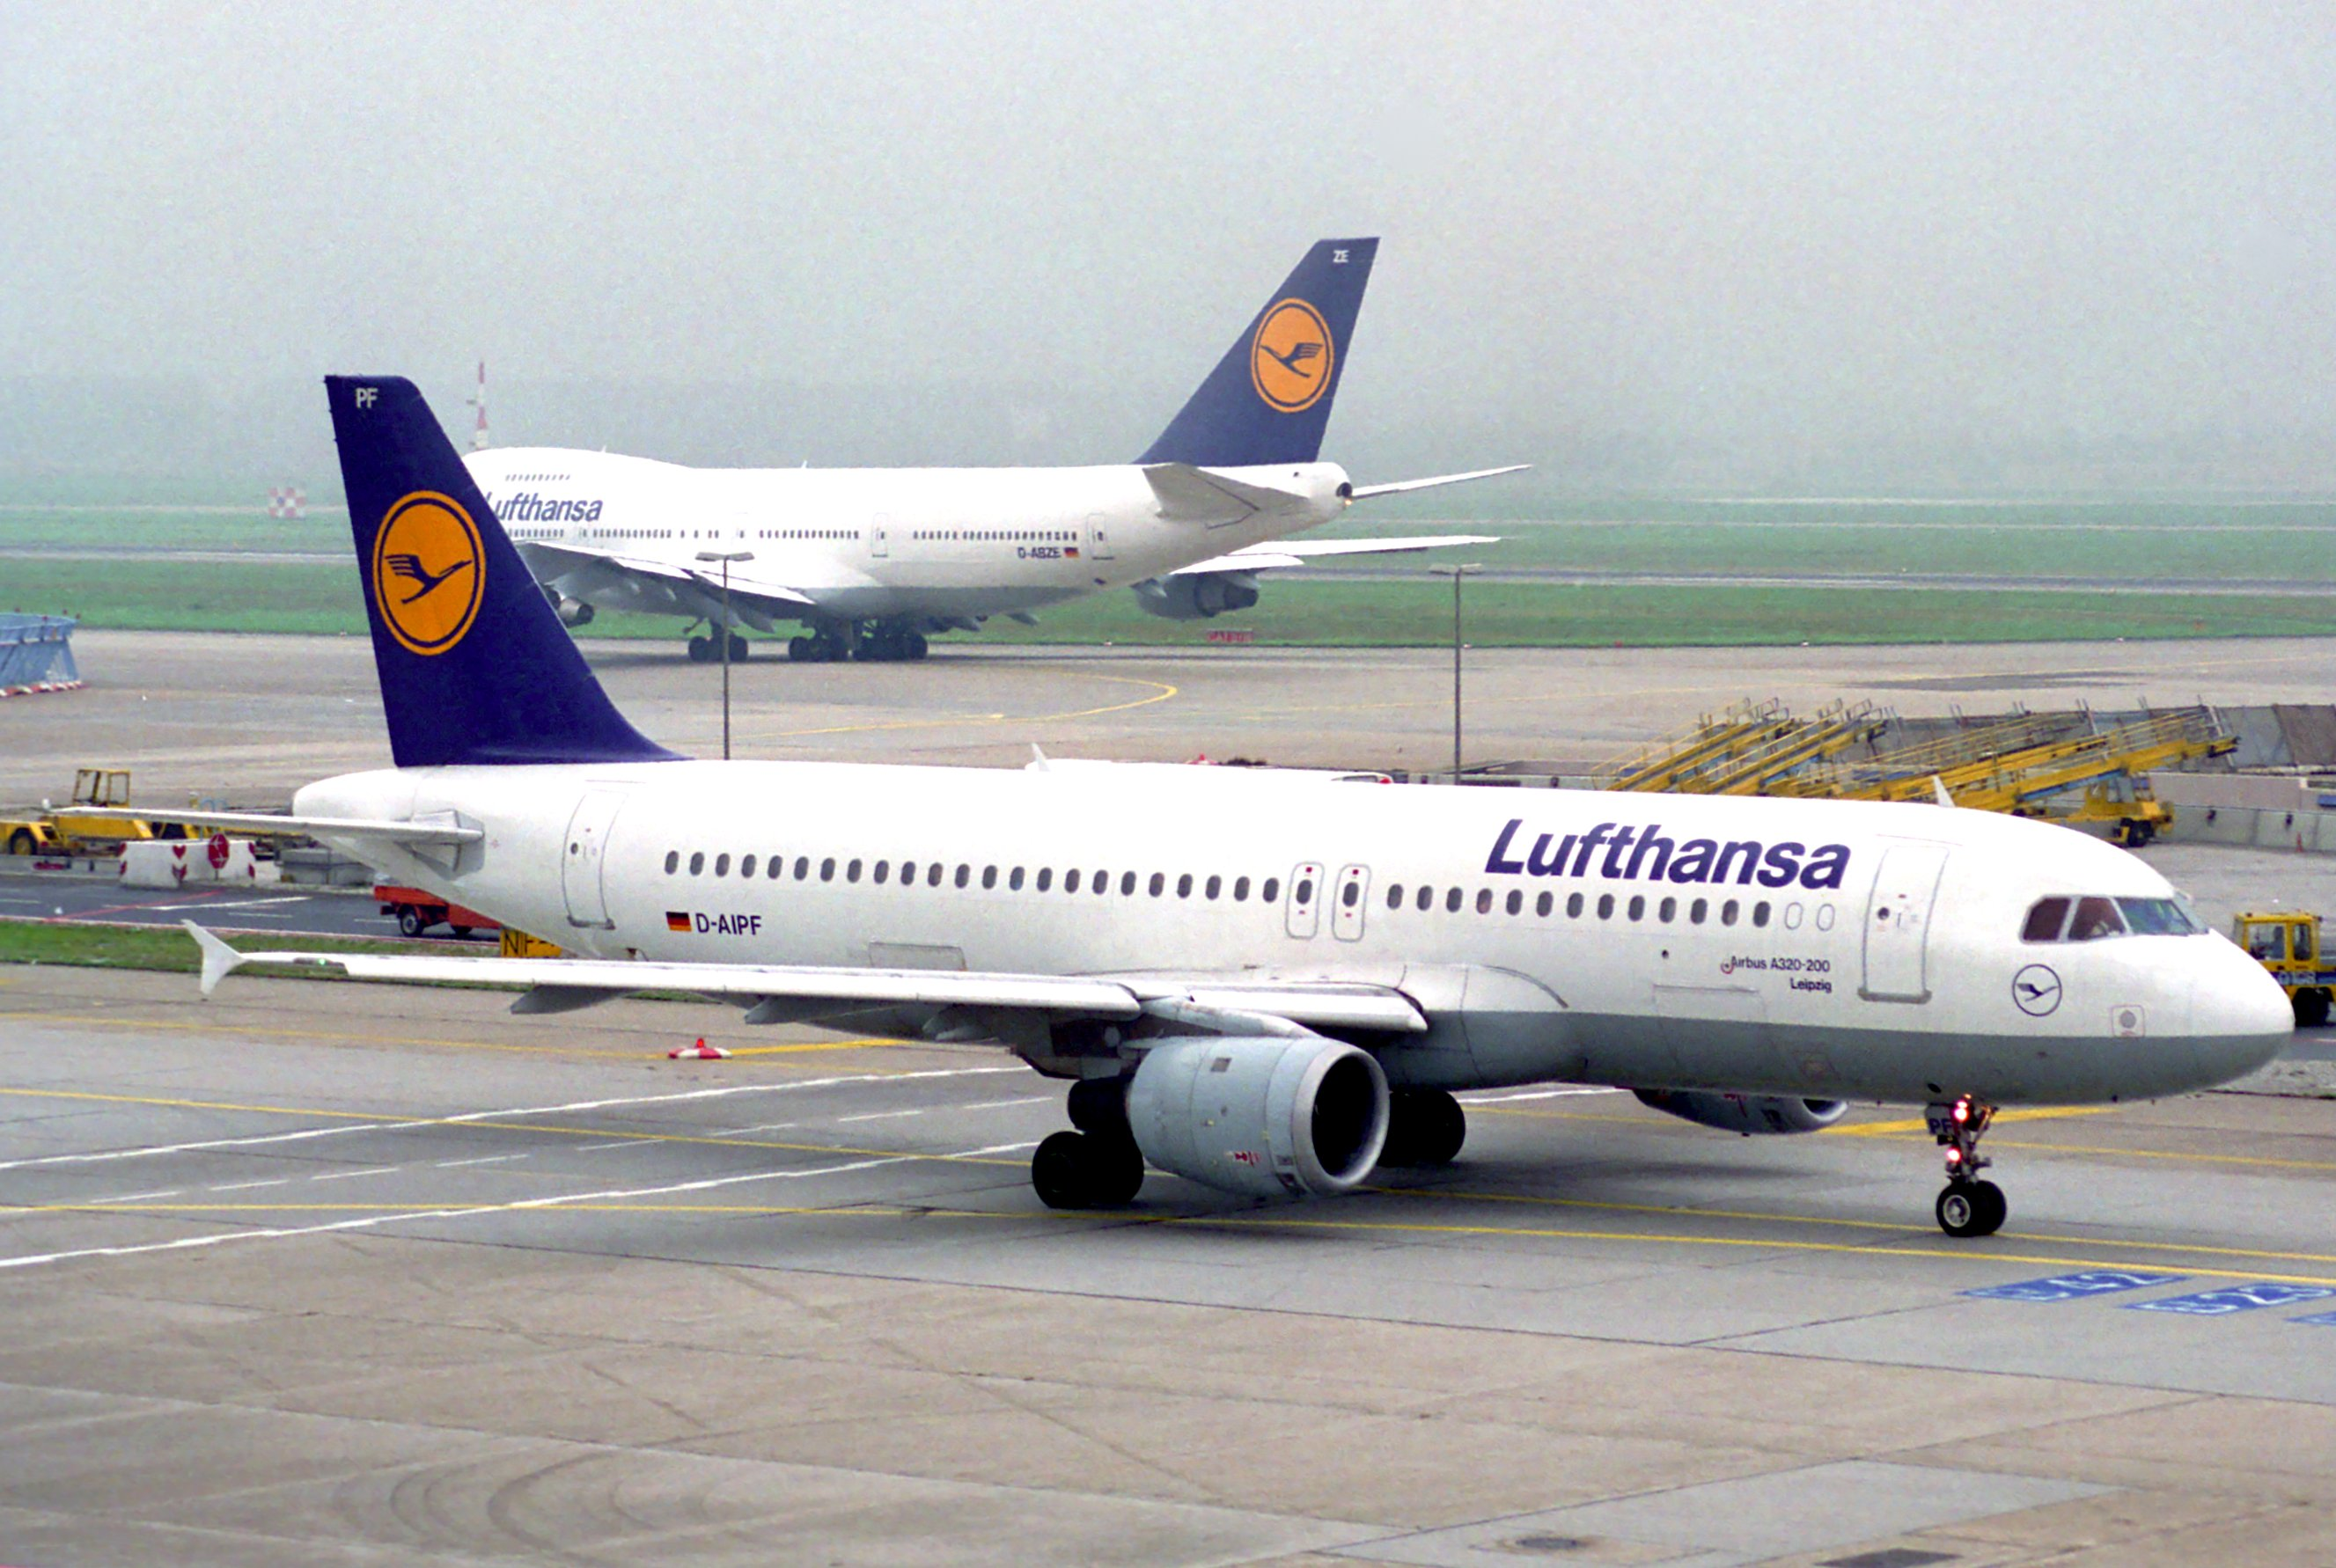 file lufthansa airbus a320 211 d aipf fra 6083600435 jpg wikimedia commons. Black Bedroom Furniture Sets. Home Design Ideas